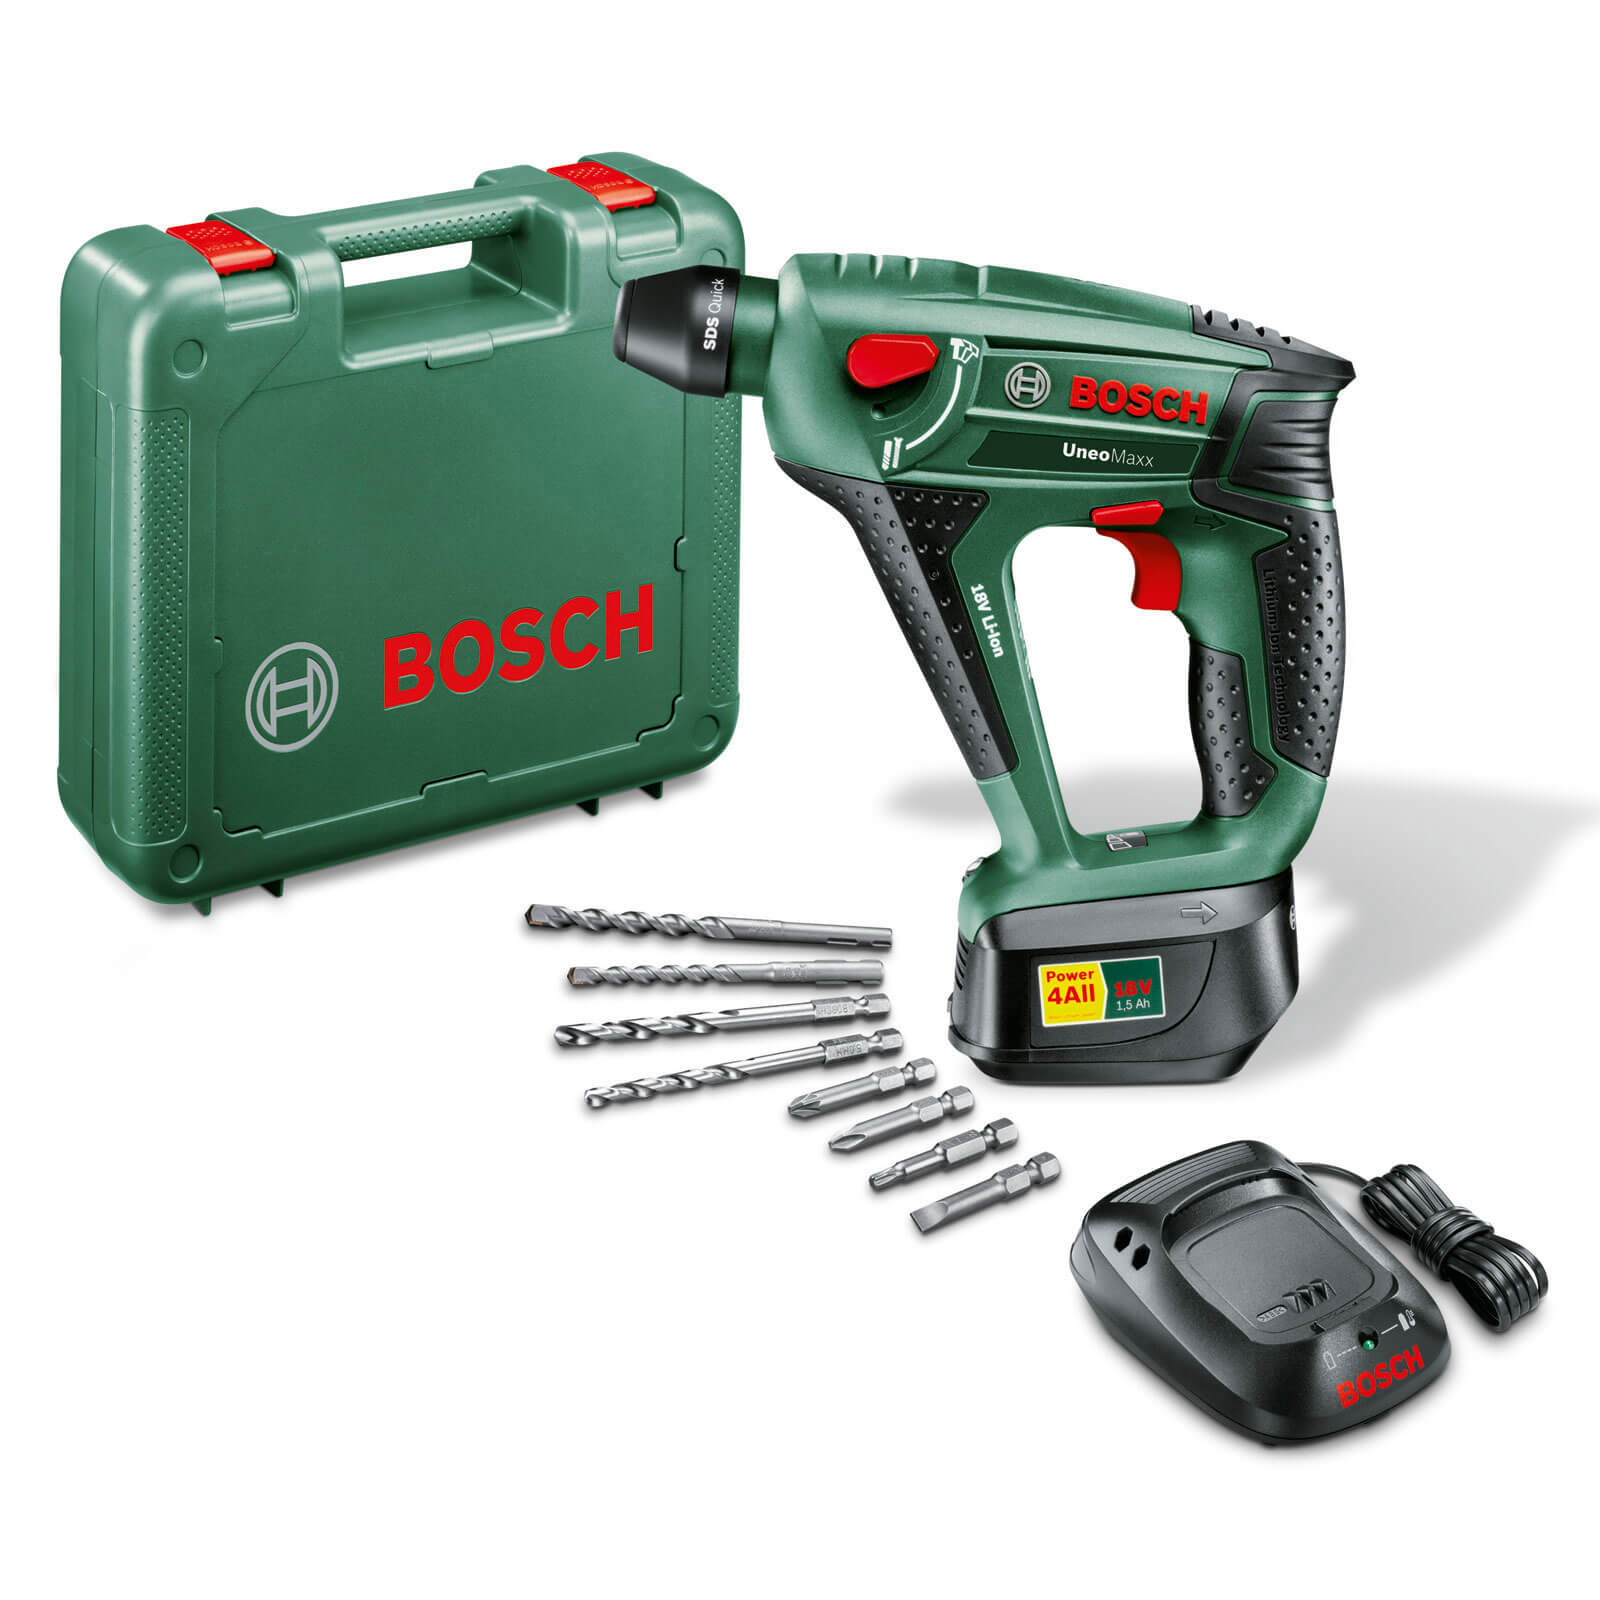 bosch power4all uneo maxx 18v cordless 3 in 1 sds quick. Black Bedroom Furniture Sets. Home Design Ideas